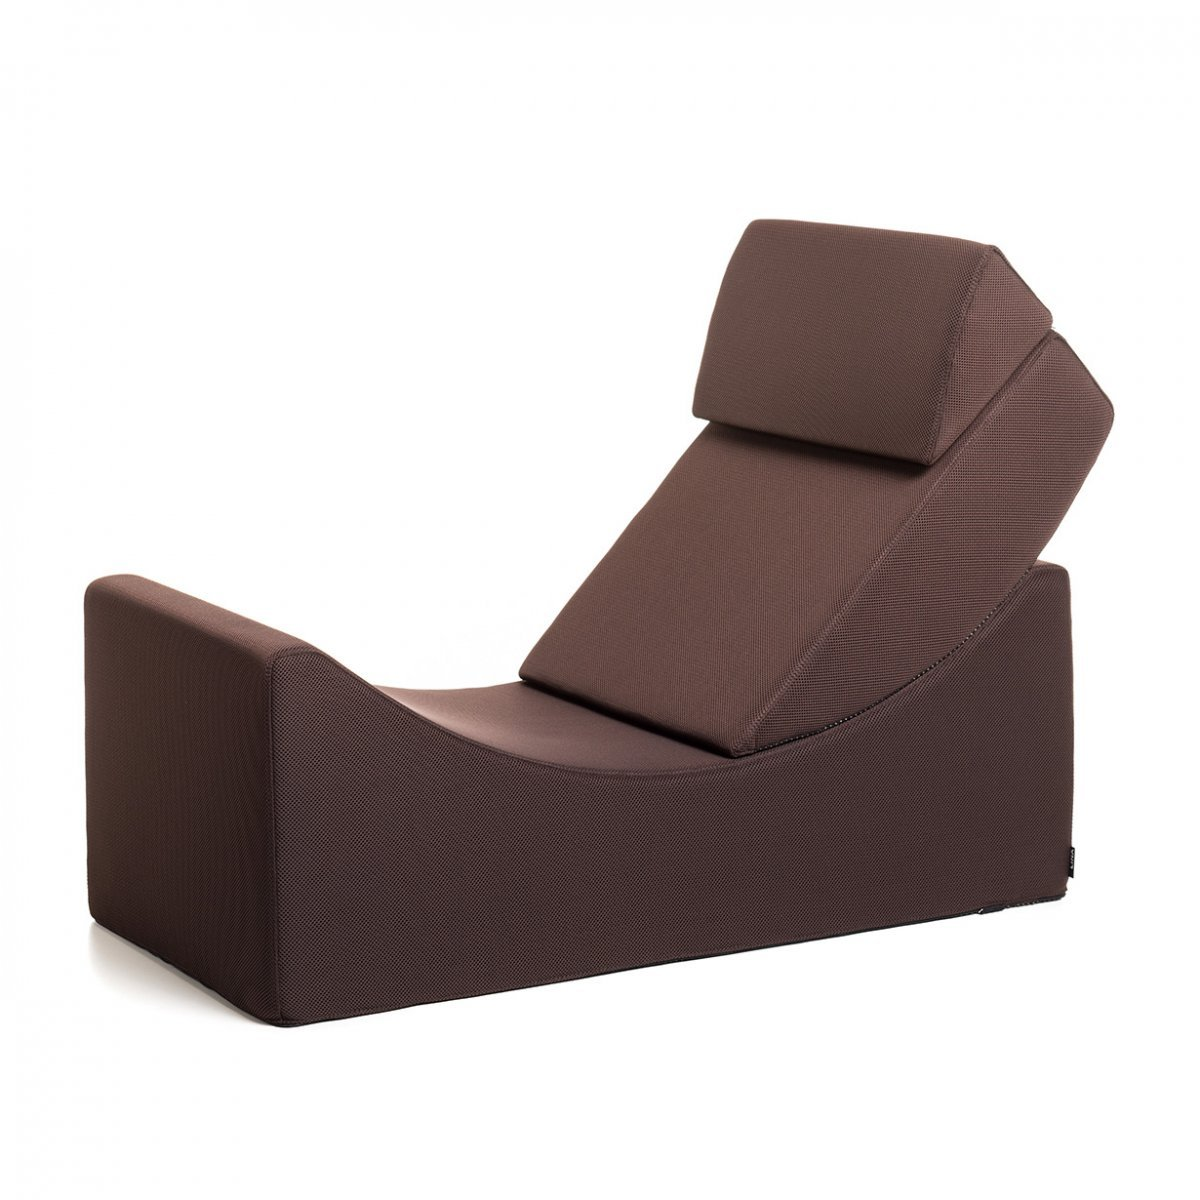 Moon Longue Reviews And Chaise Deals TlFJc1K3